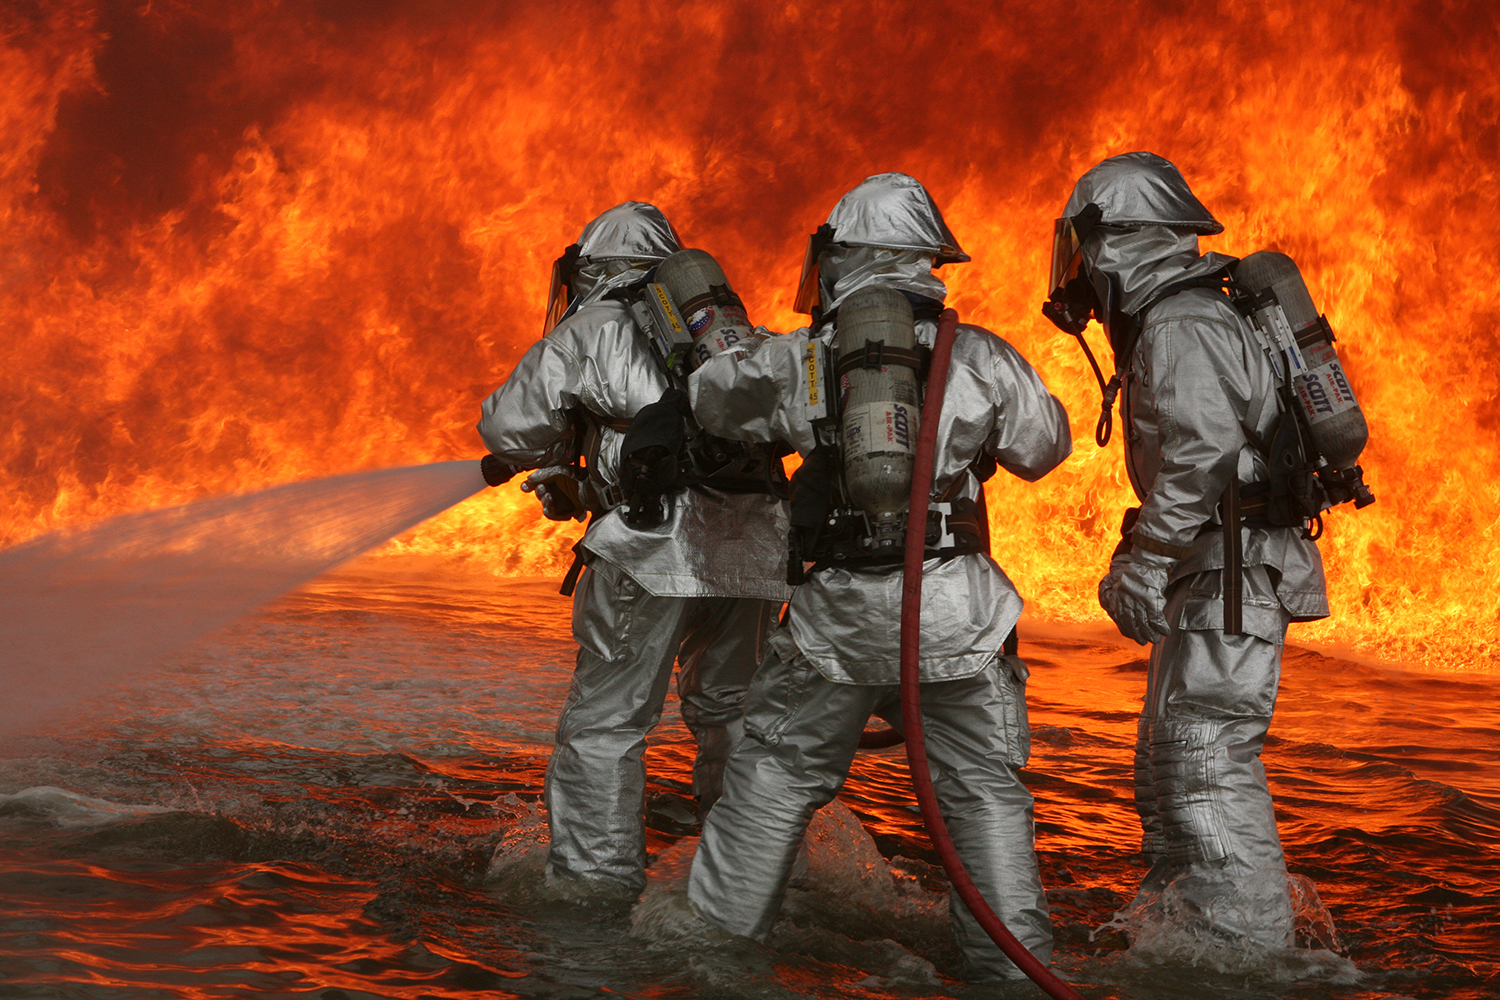 Do You Have a Toxic 'Fire-Fighting' Culture? Fix It or Get Burned.